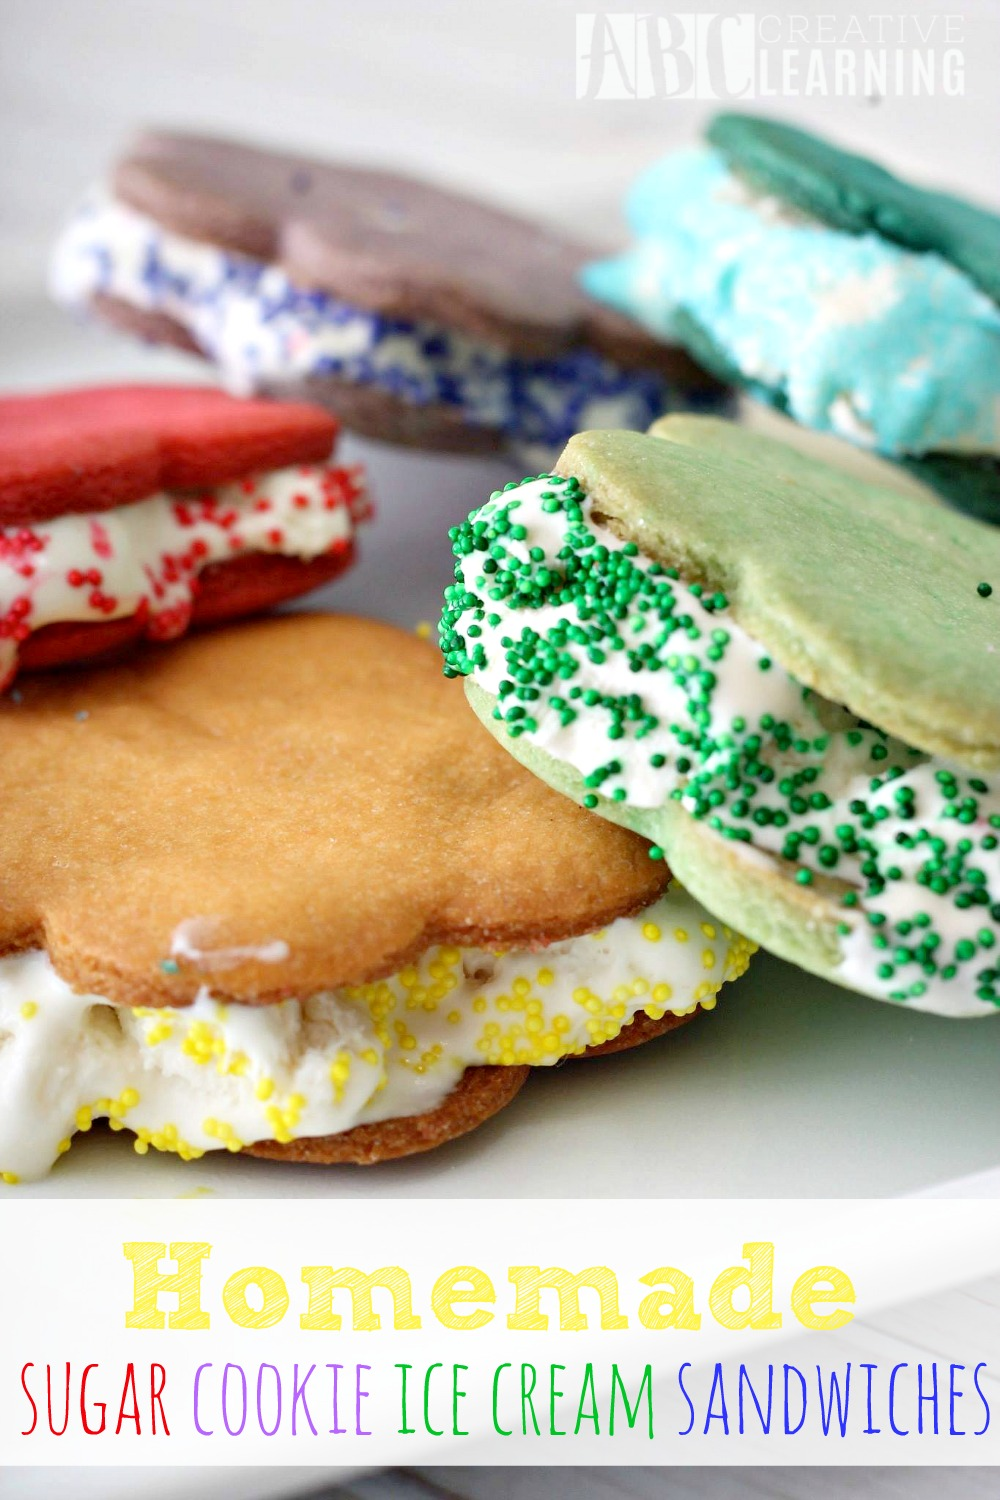 Homemade Sugar Cookie Ice Cream Sandwiches - ABC Creative Learning